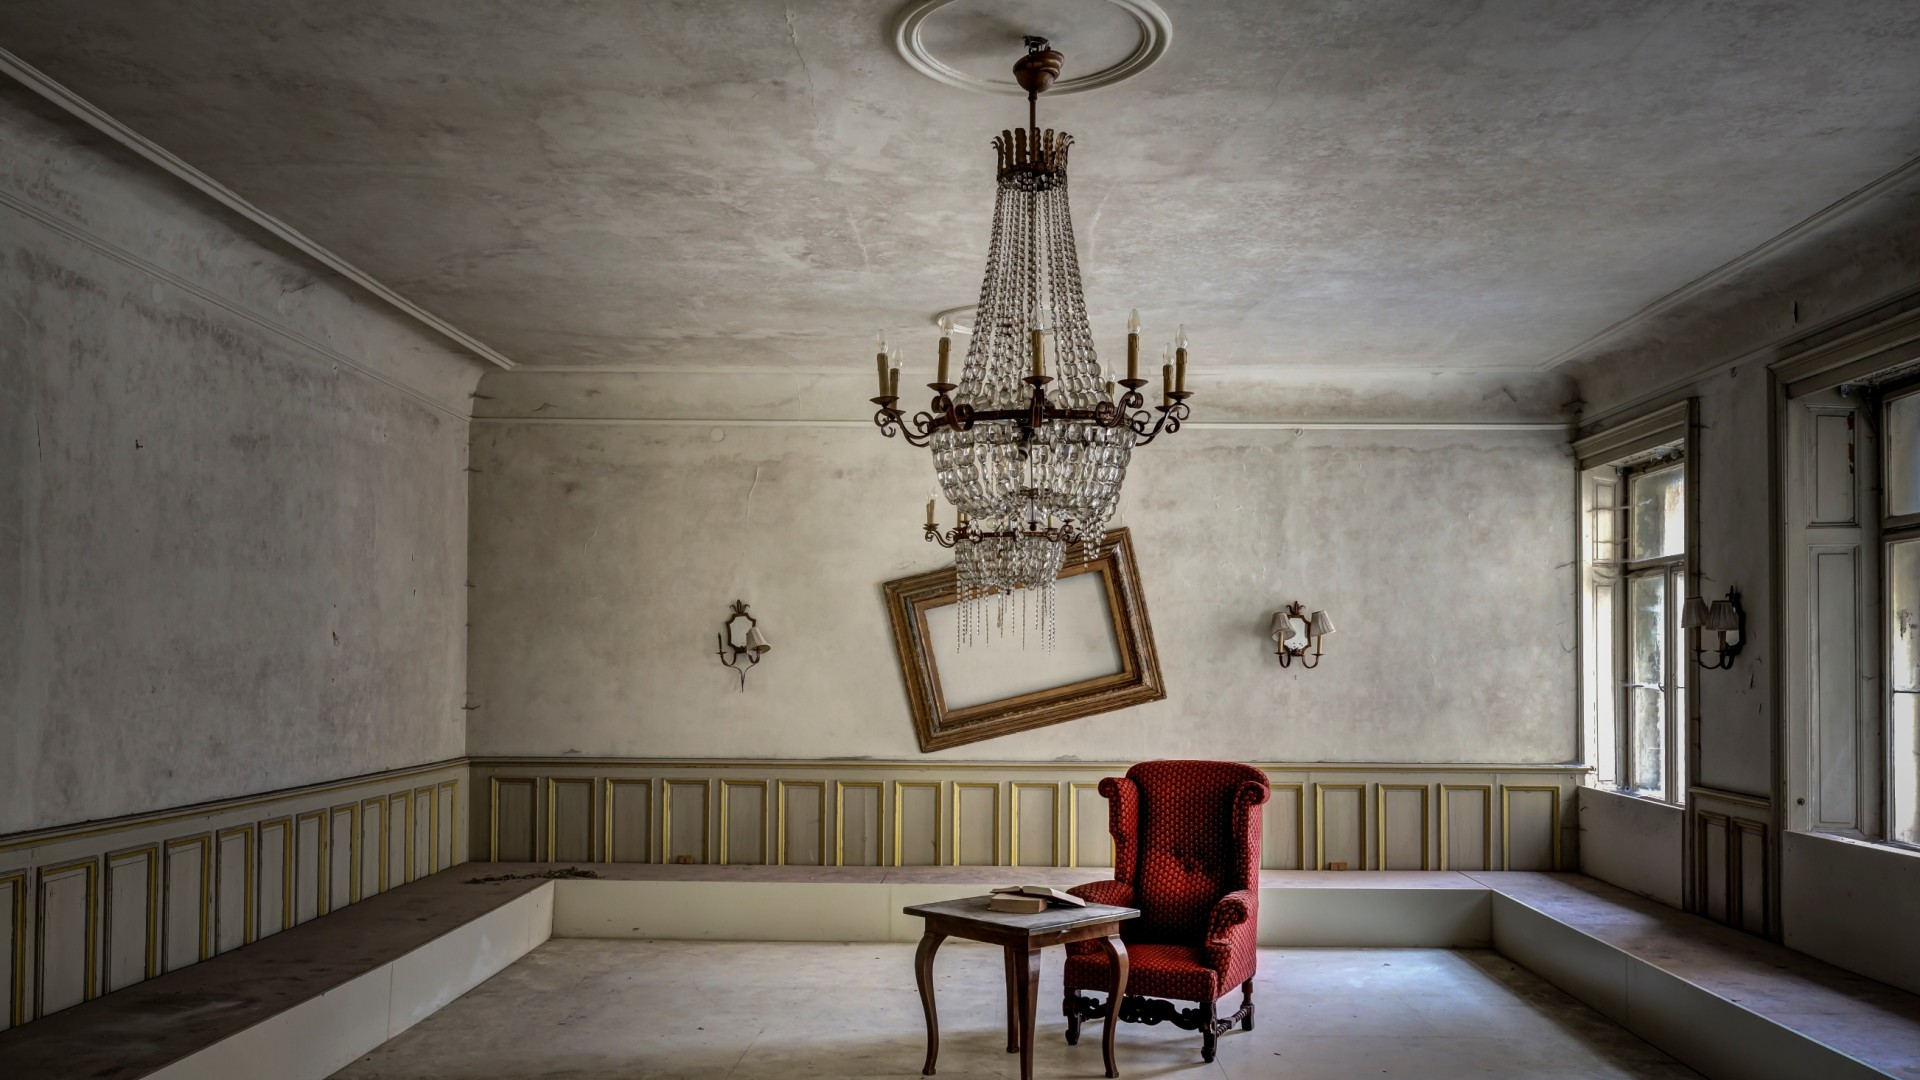 Download-room-chandelier-chair-interior-resolution-1920x1080-wallpaper-wpc9004490